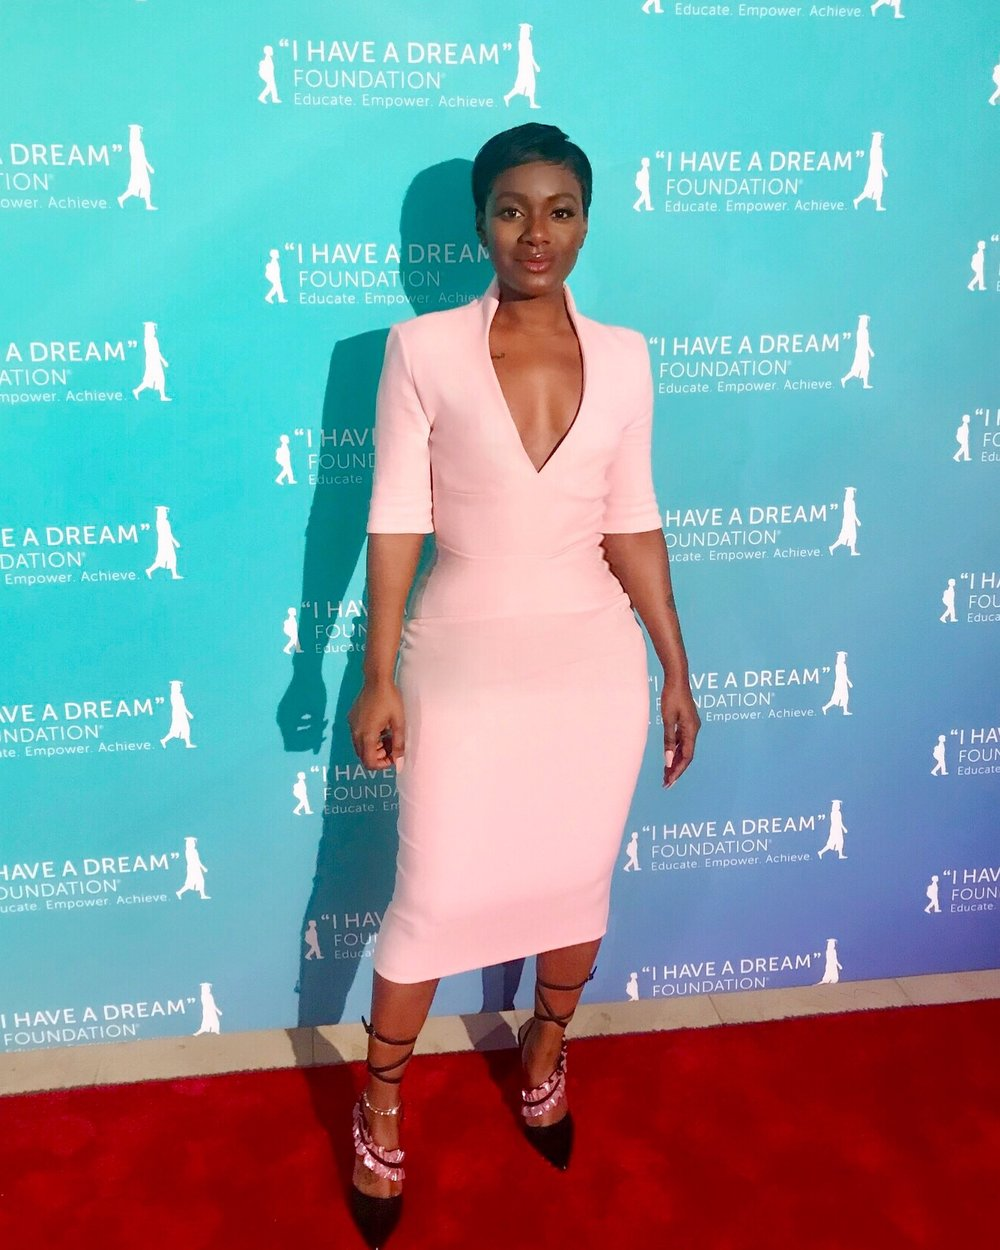 TasheemaFelderJune2018 Influencer Spirit of The Dream Gala I Have A DReam foundation.jpeg